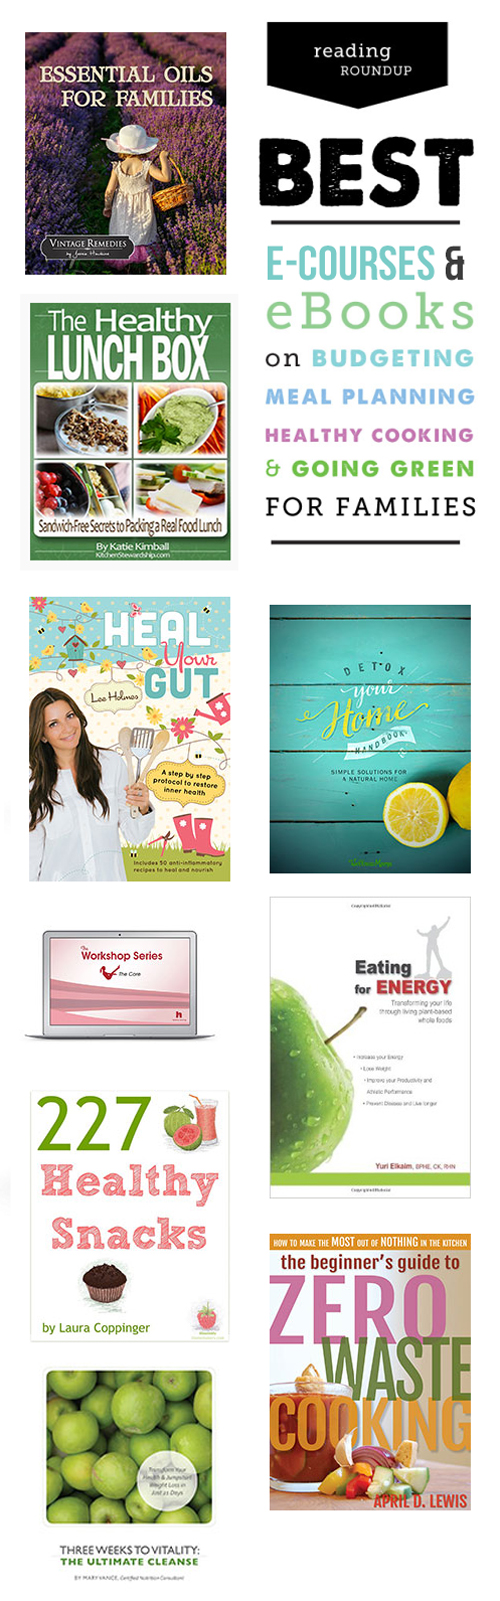 The Best eCourses & eBooks for living a healthier life as a family - SO MANY great resources here!!